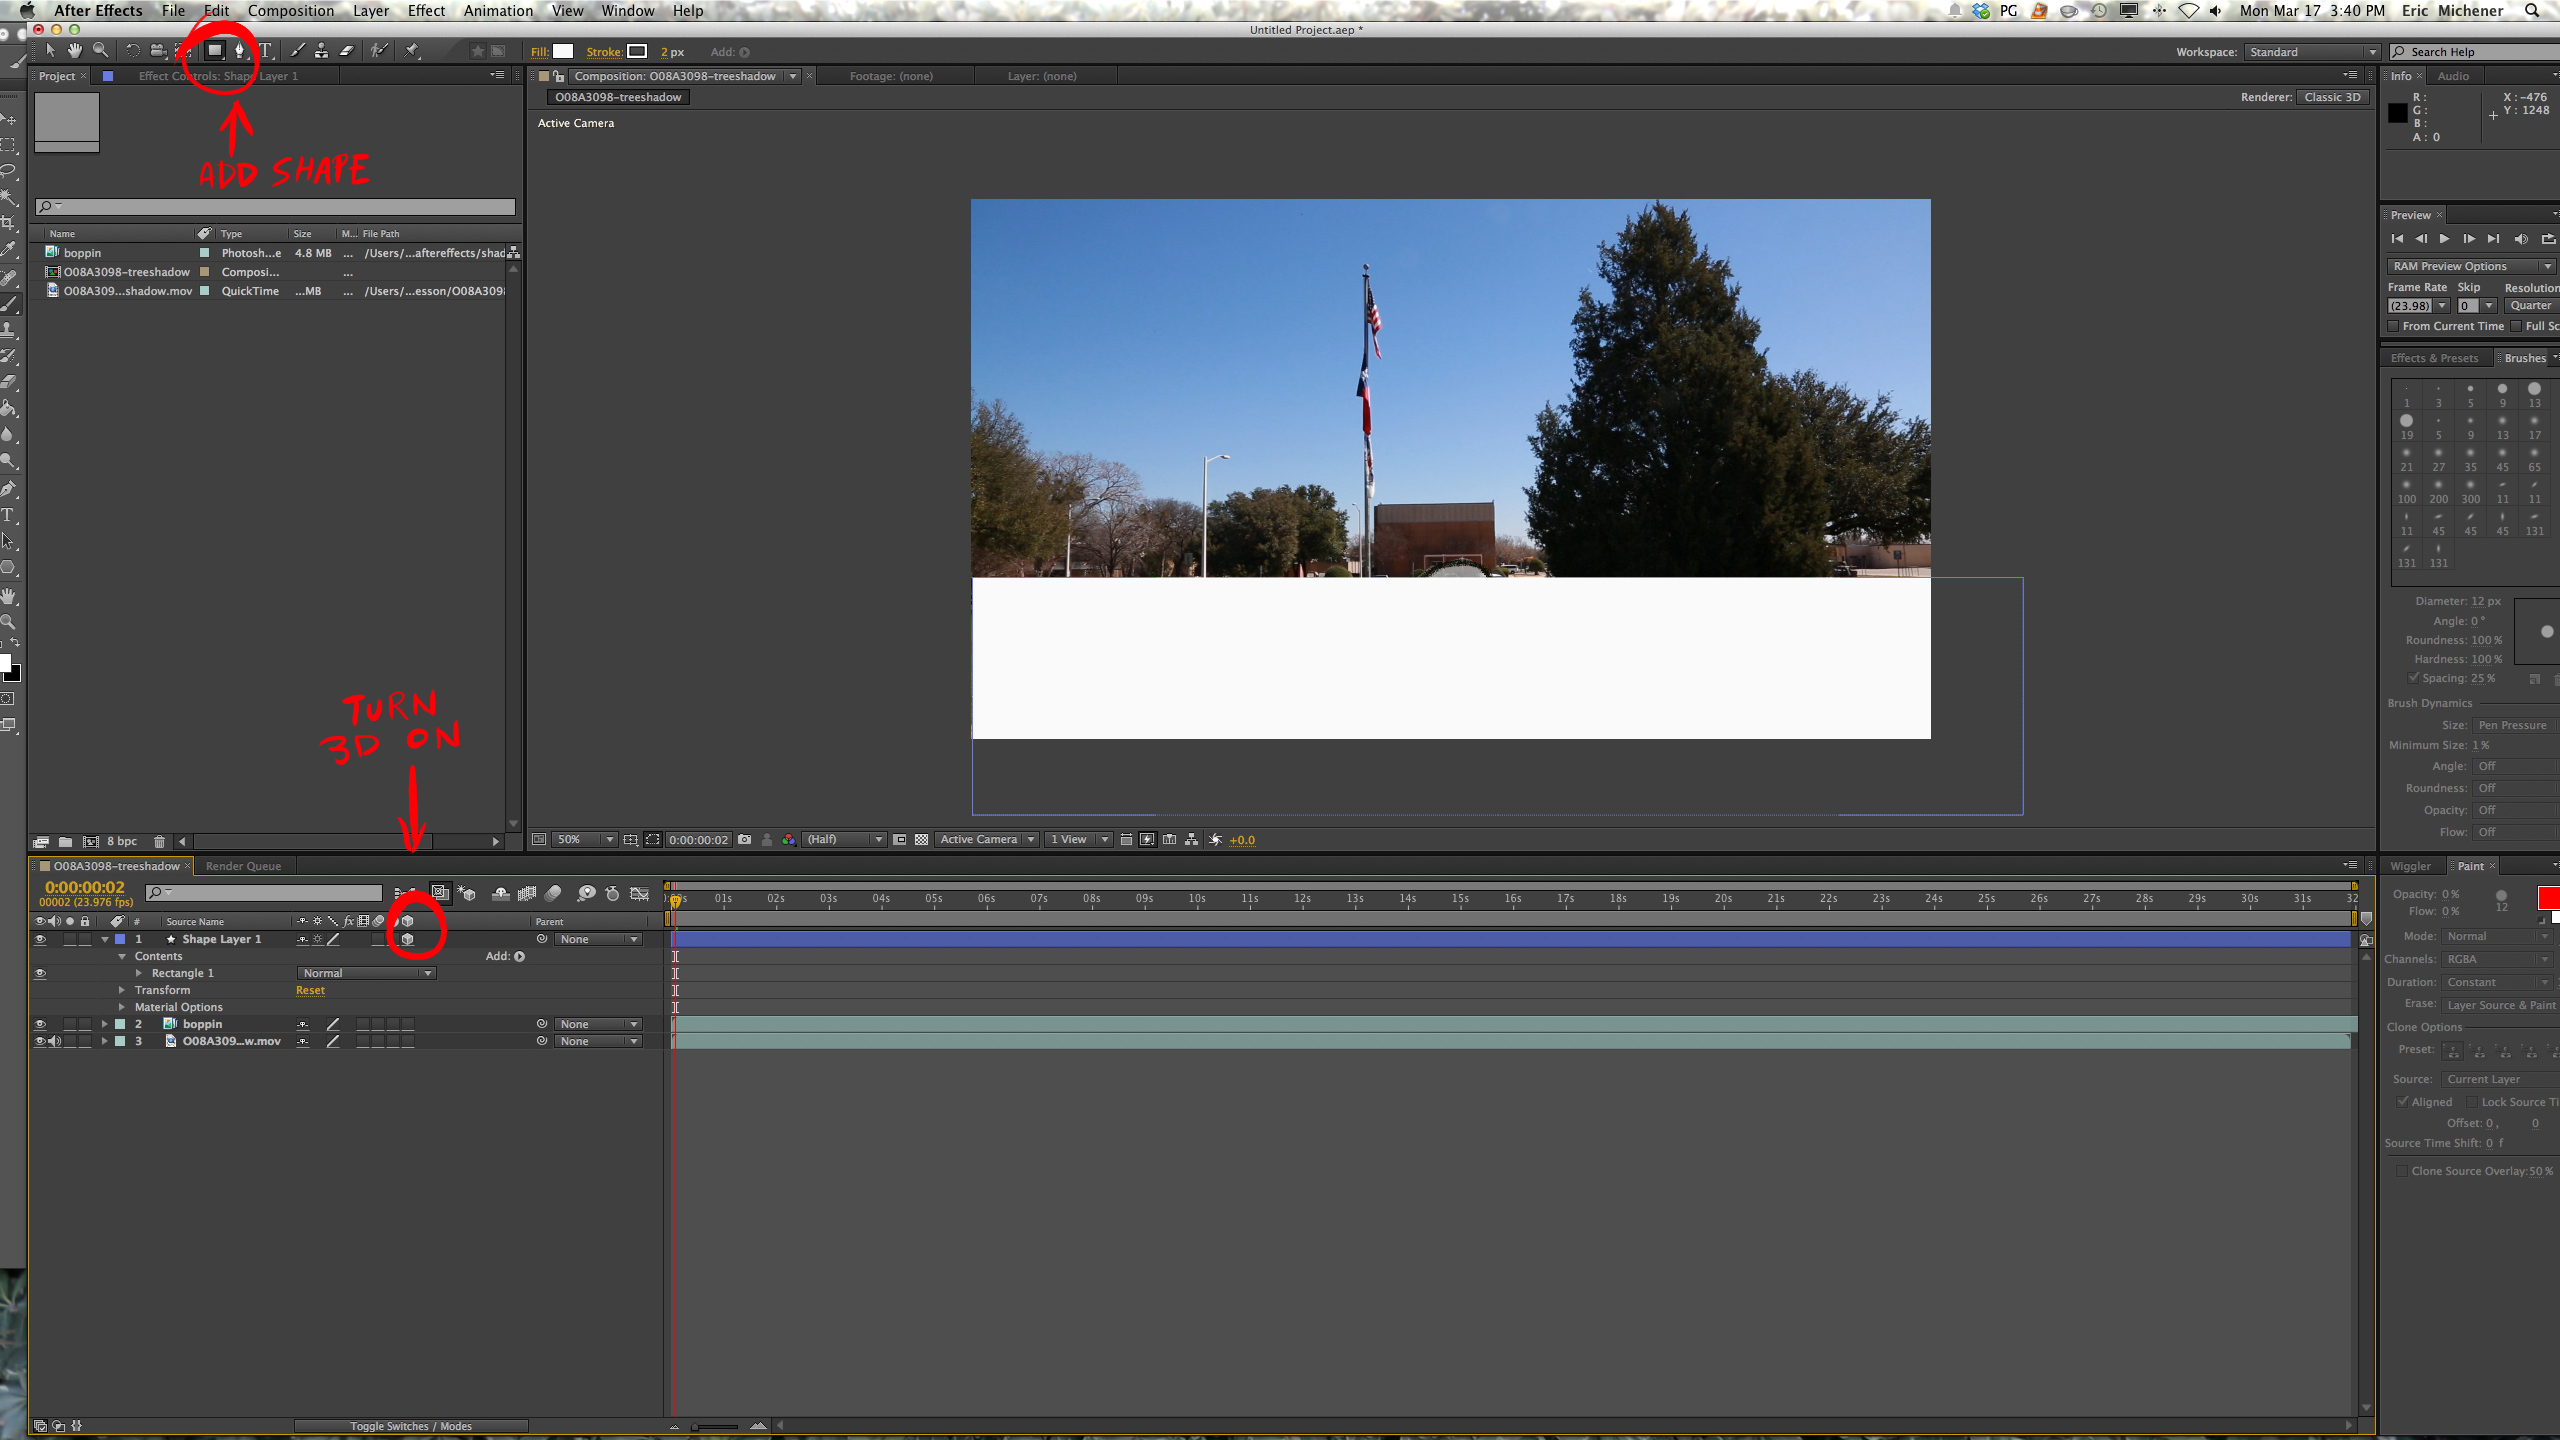 After Effects Settings